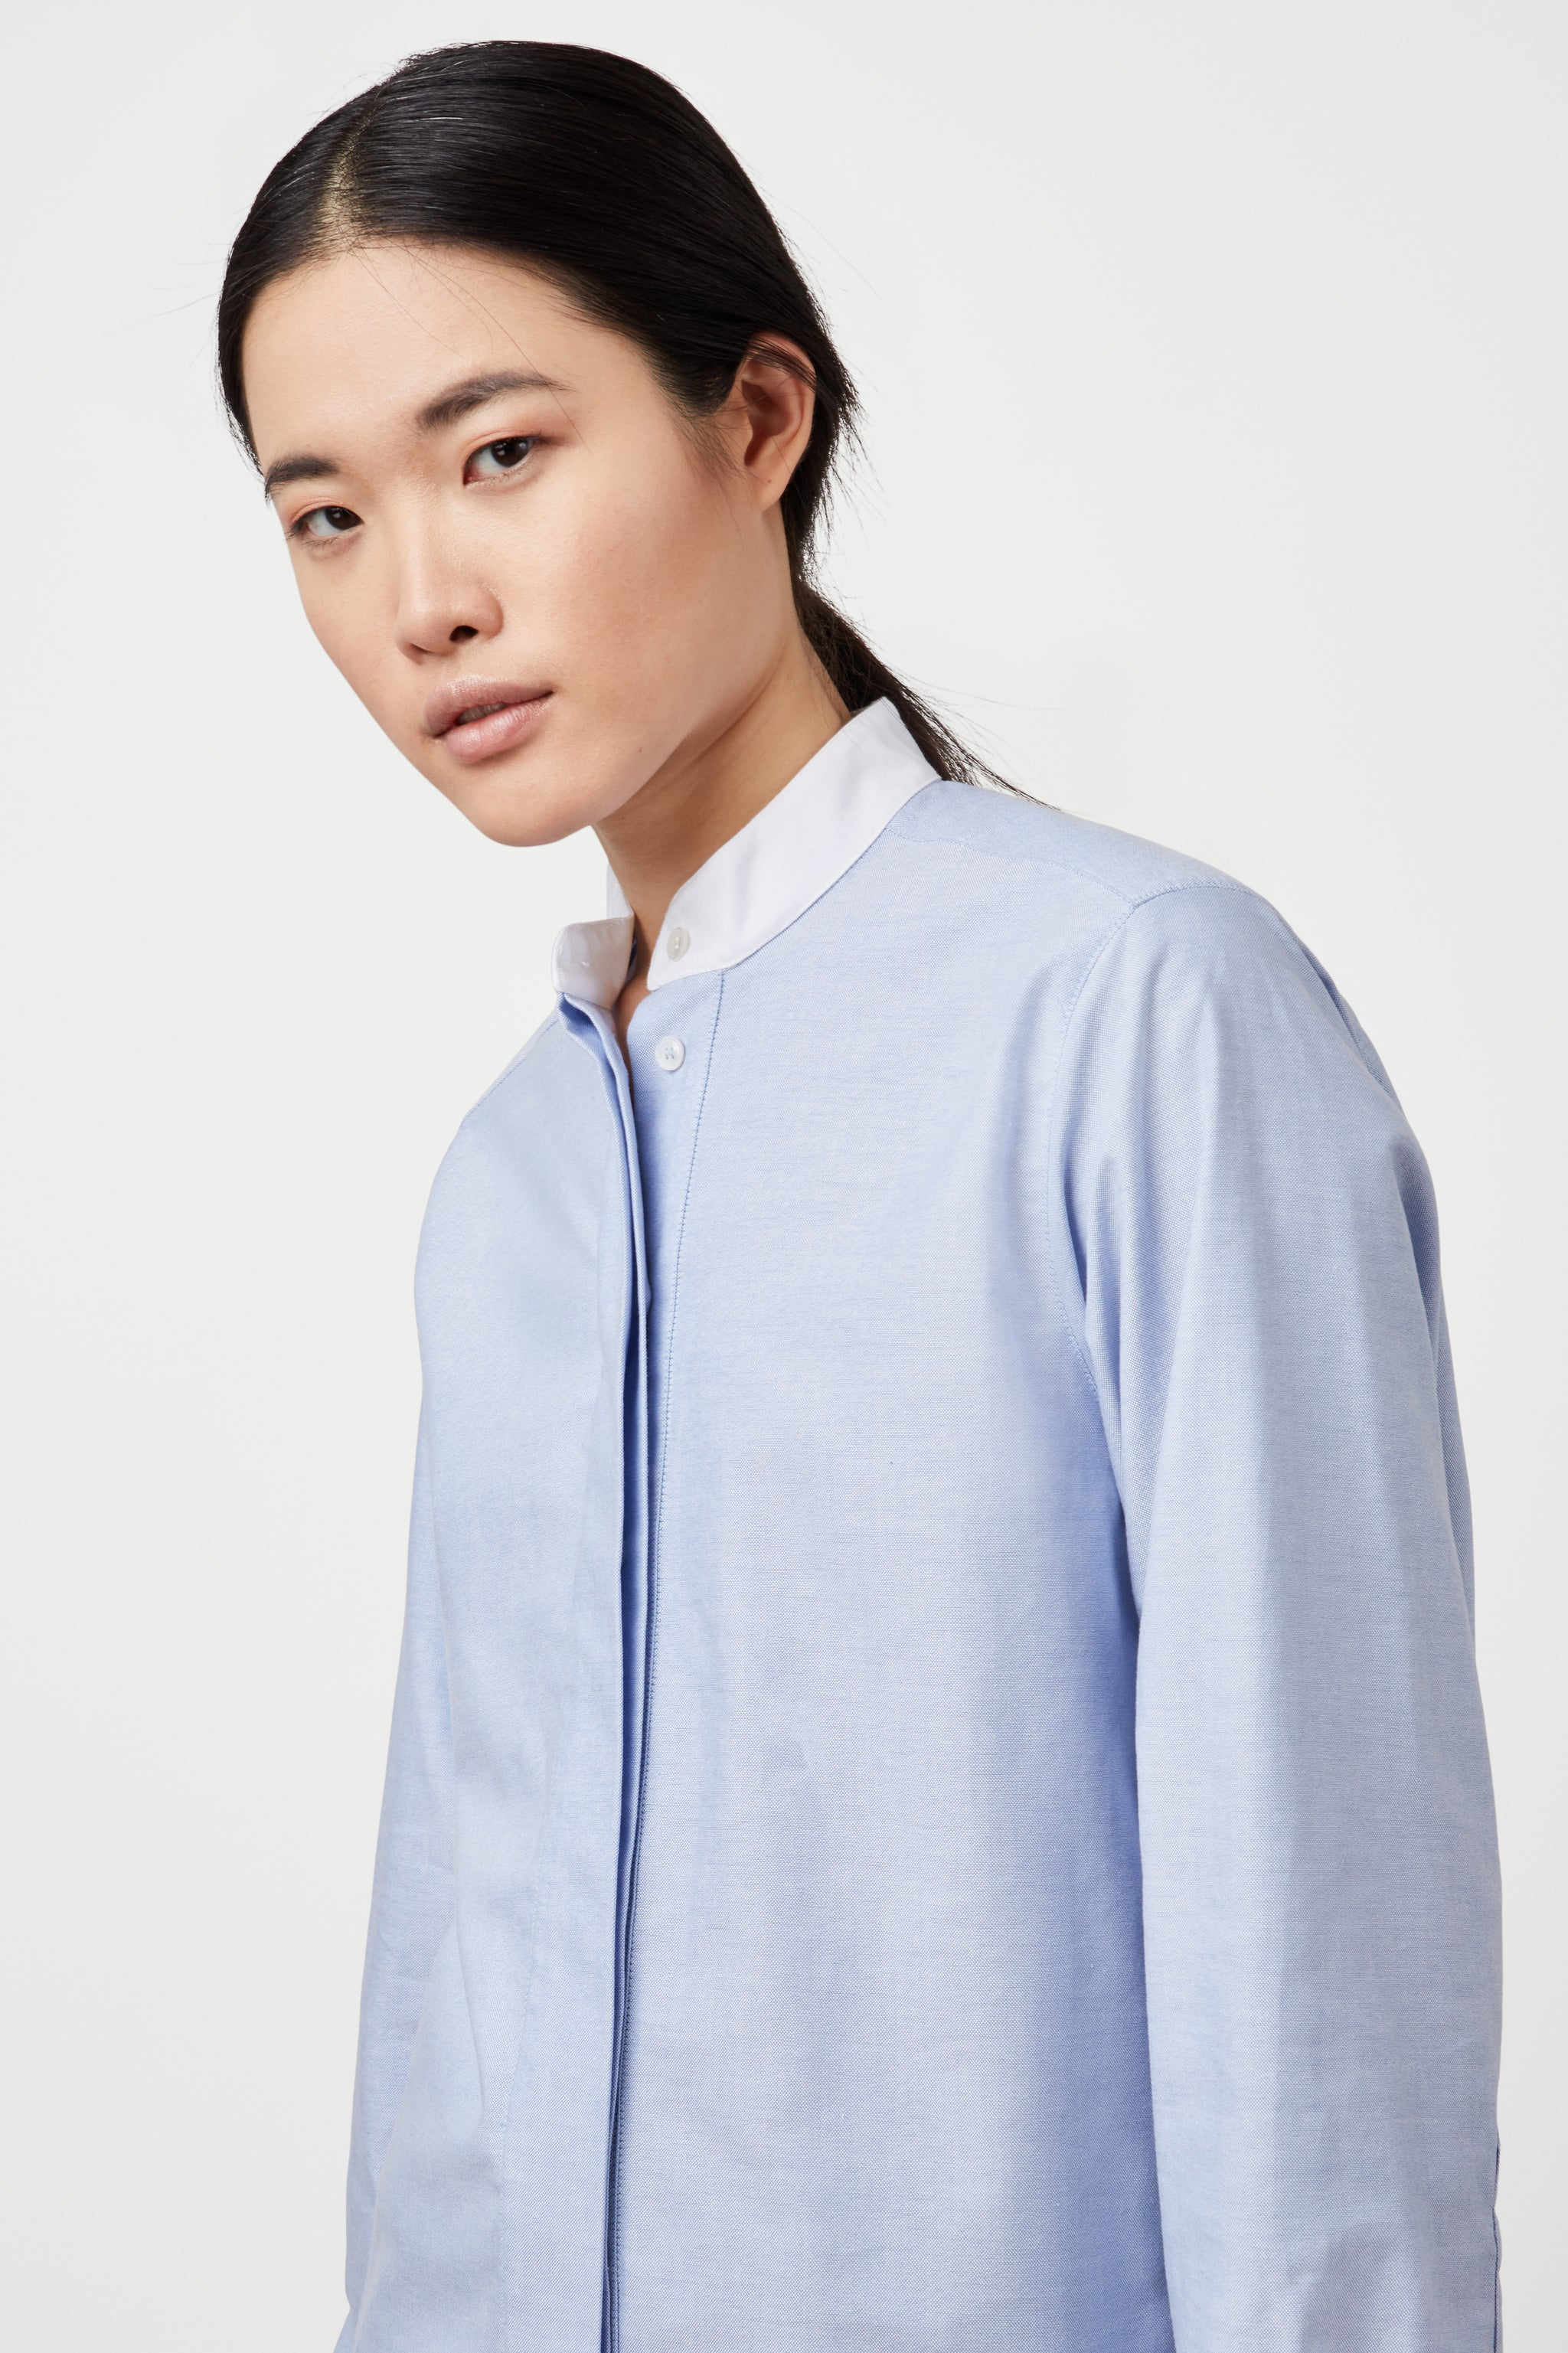 The Collarless Shirt - Blue & White Cotton - SERENA BUTE